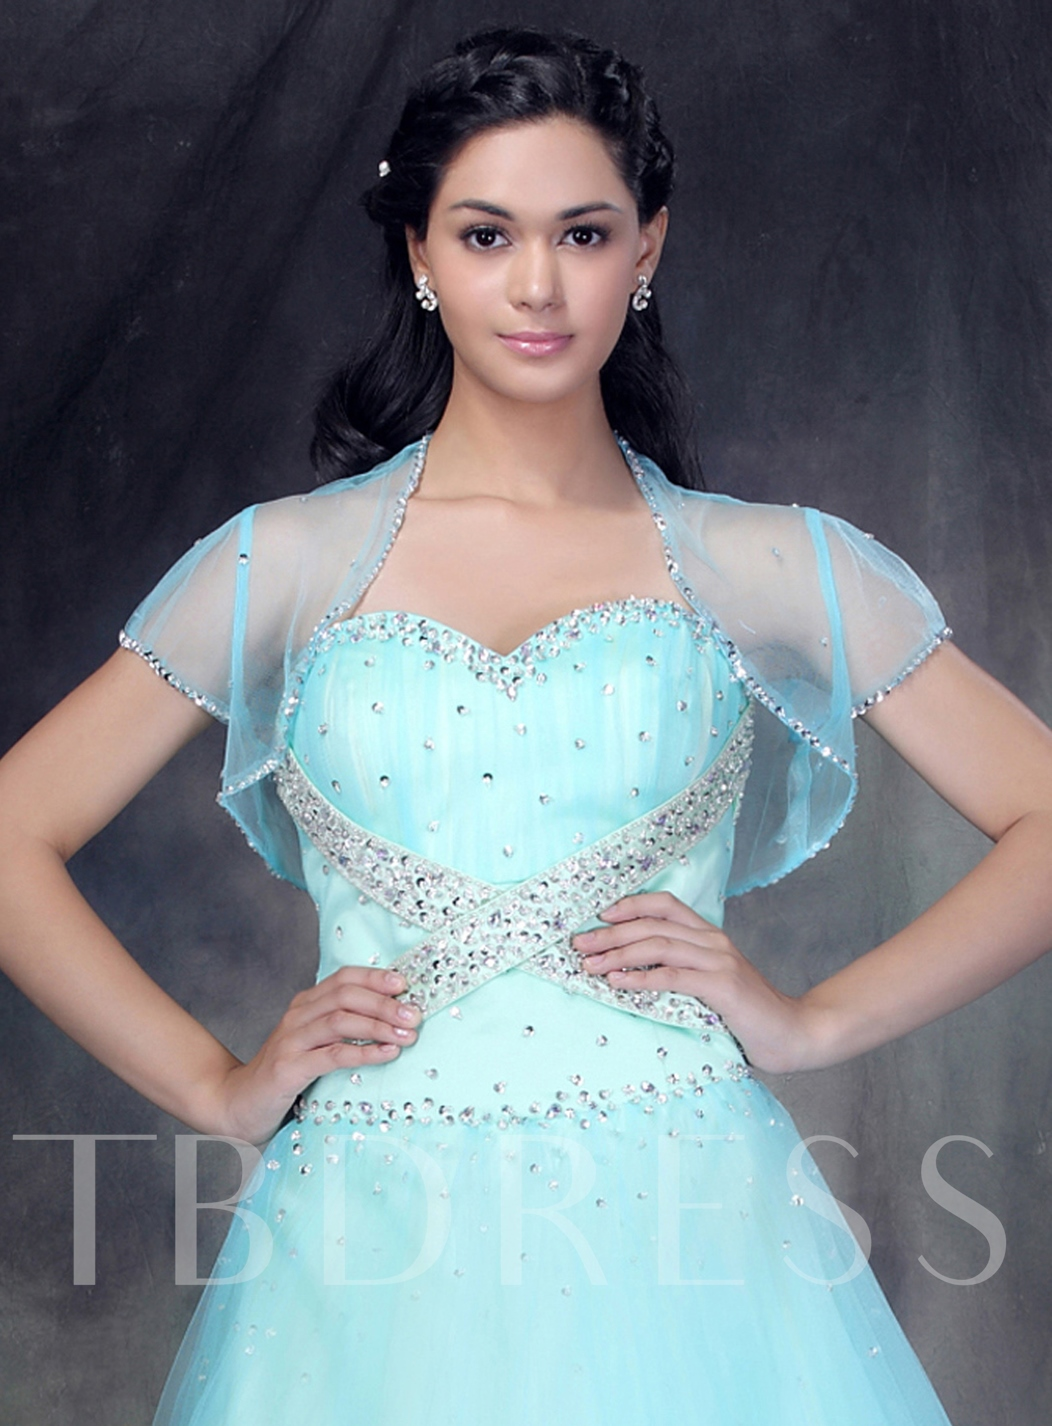 Short Sleeve Light Blue Lace Wedding Bolero/Jacket - Tbdress.com